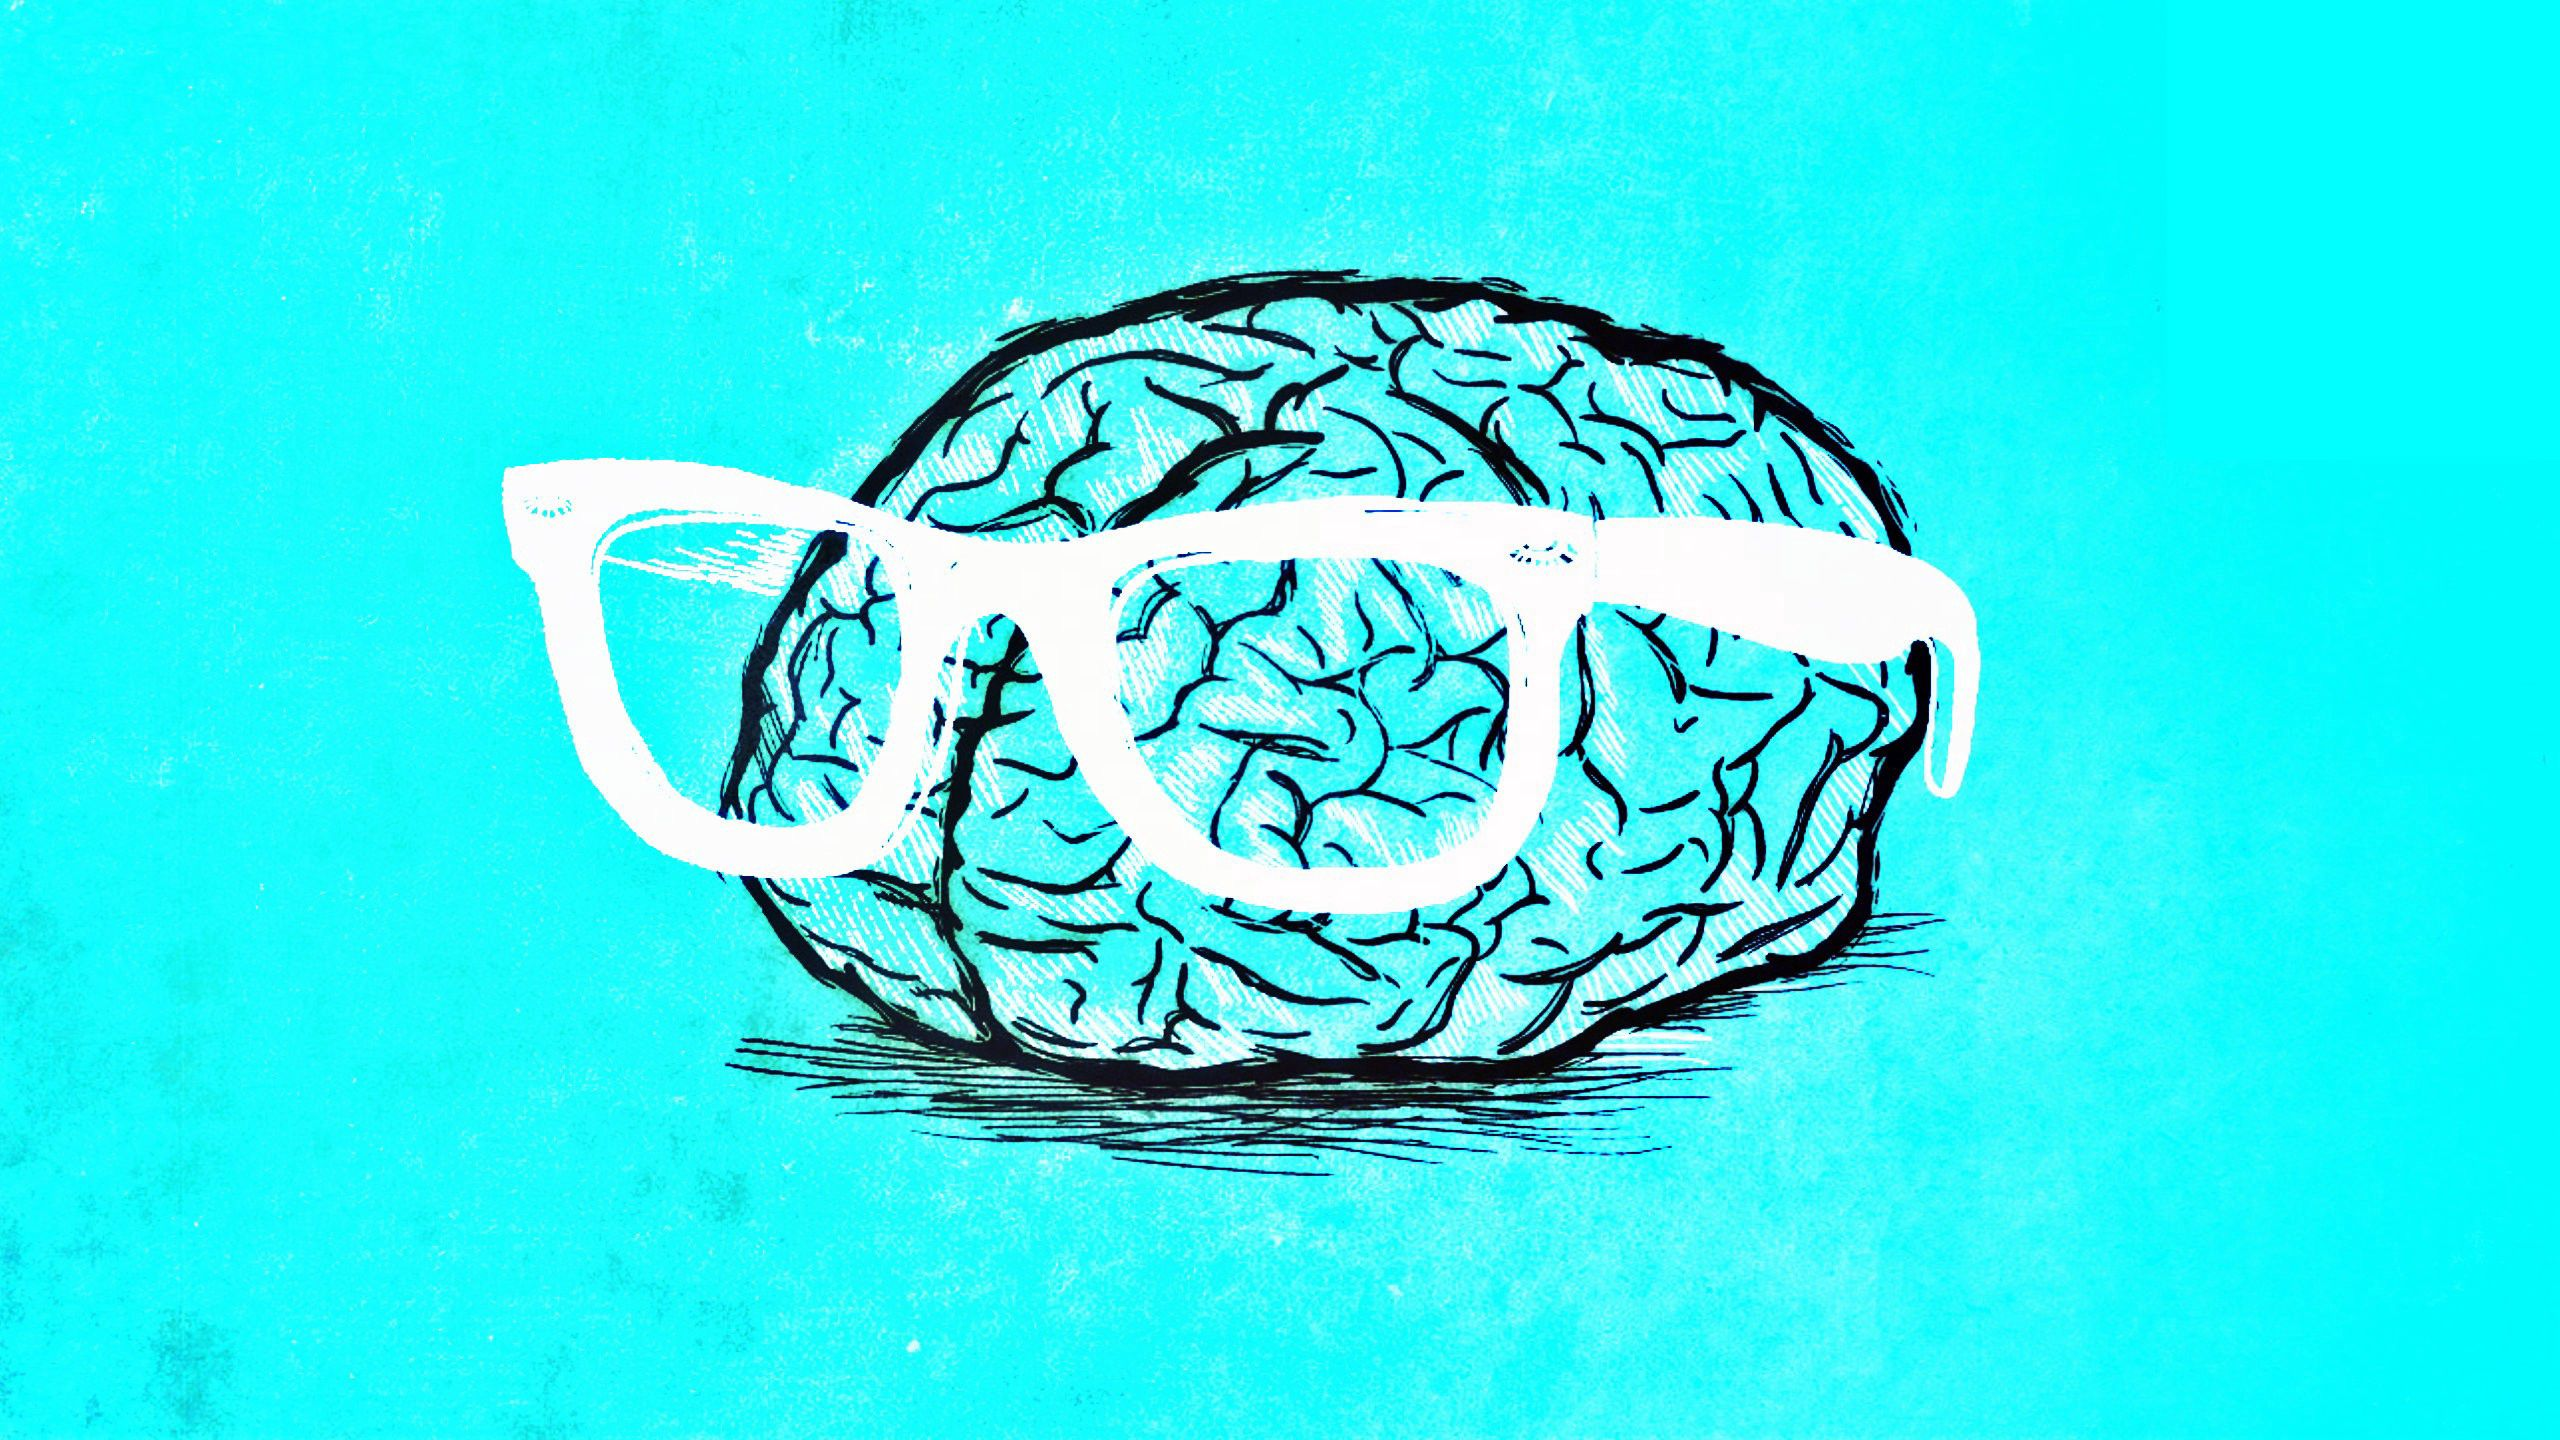 146272 download wallpaper Art, Vector, Glasses, Spectacles, Brain, Brains screensavers and pictures for free